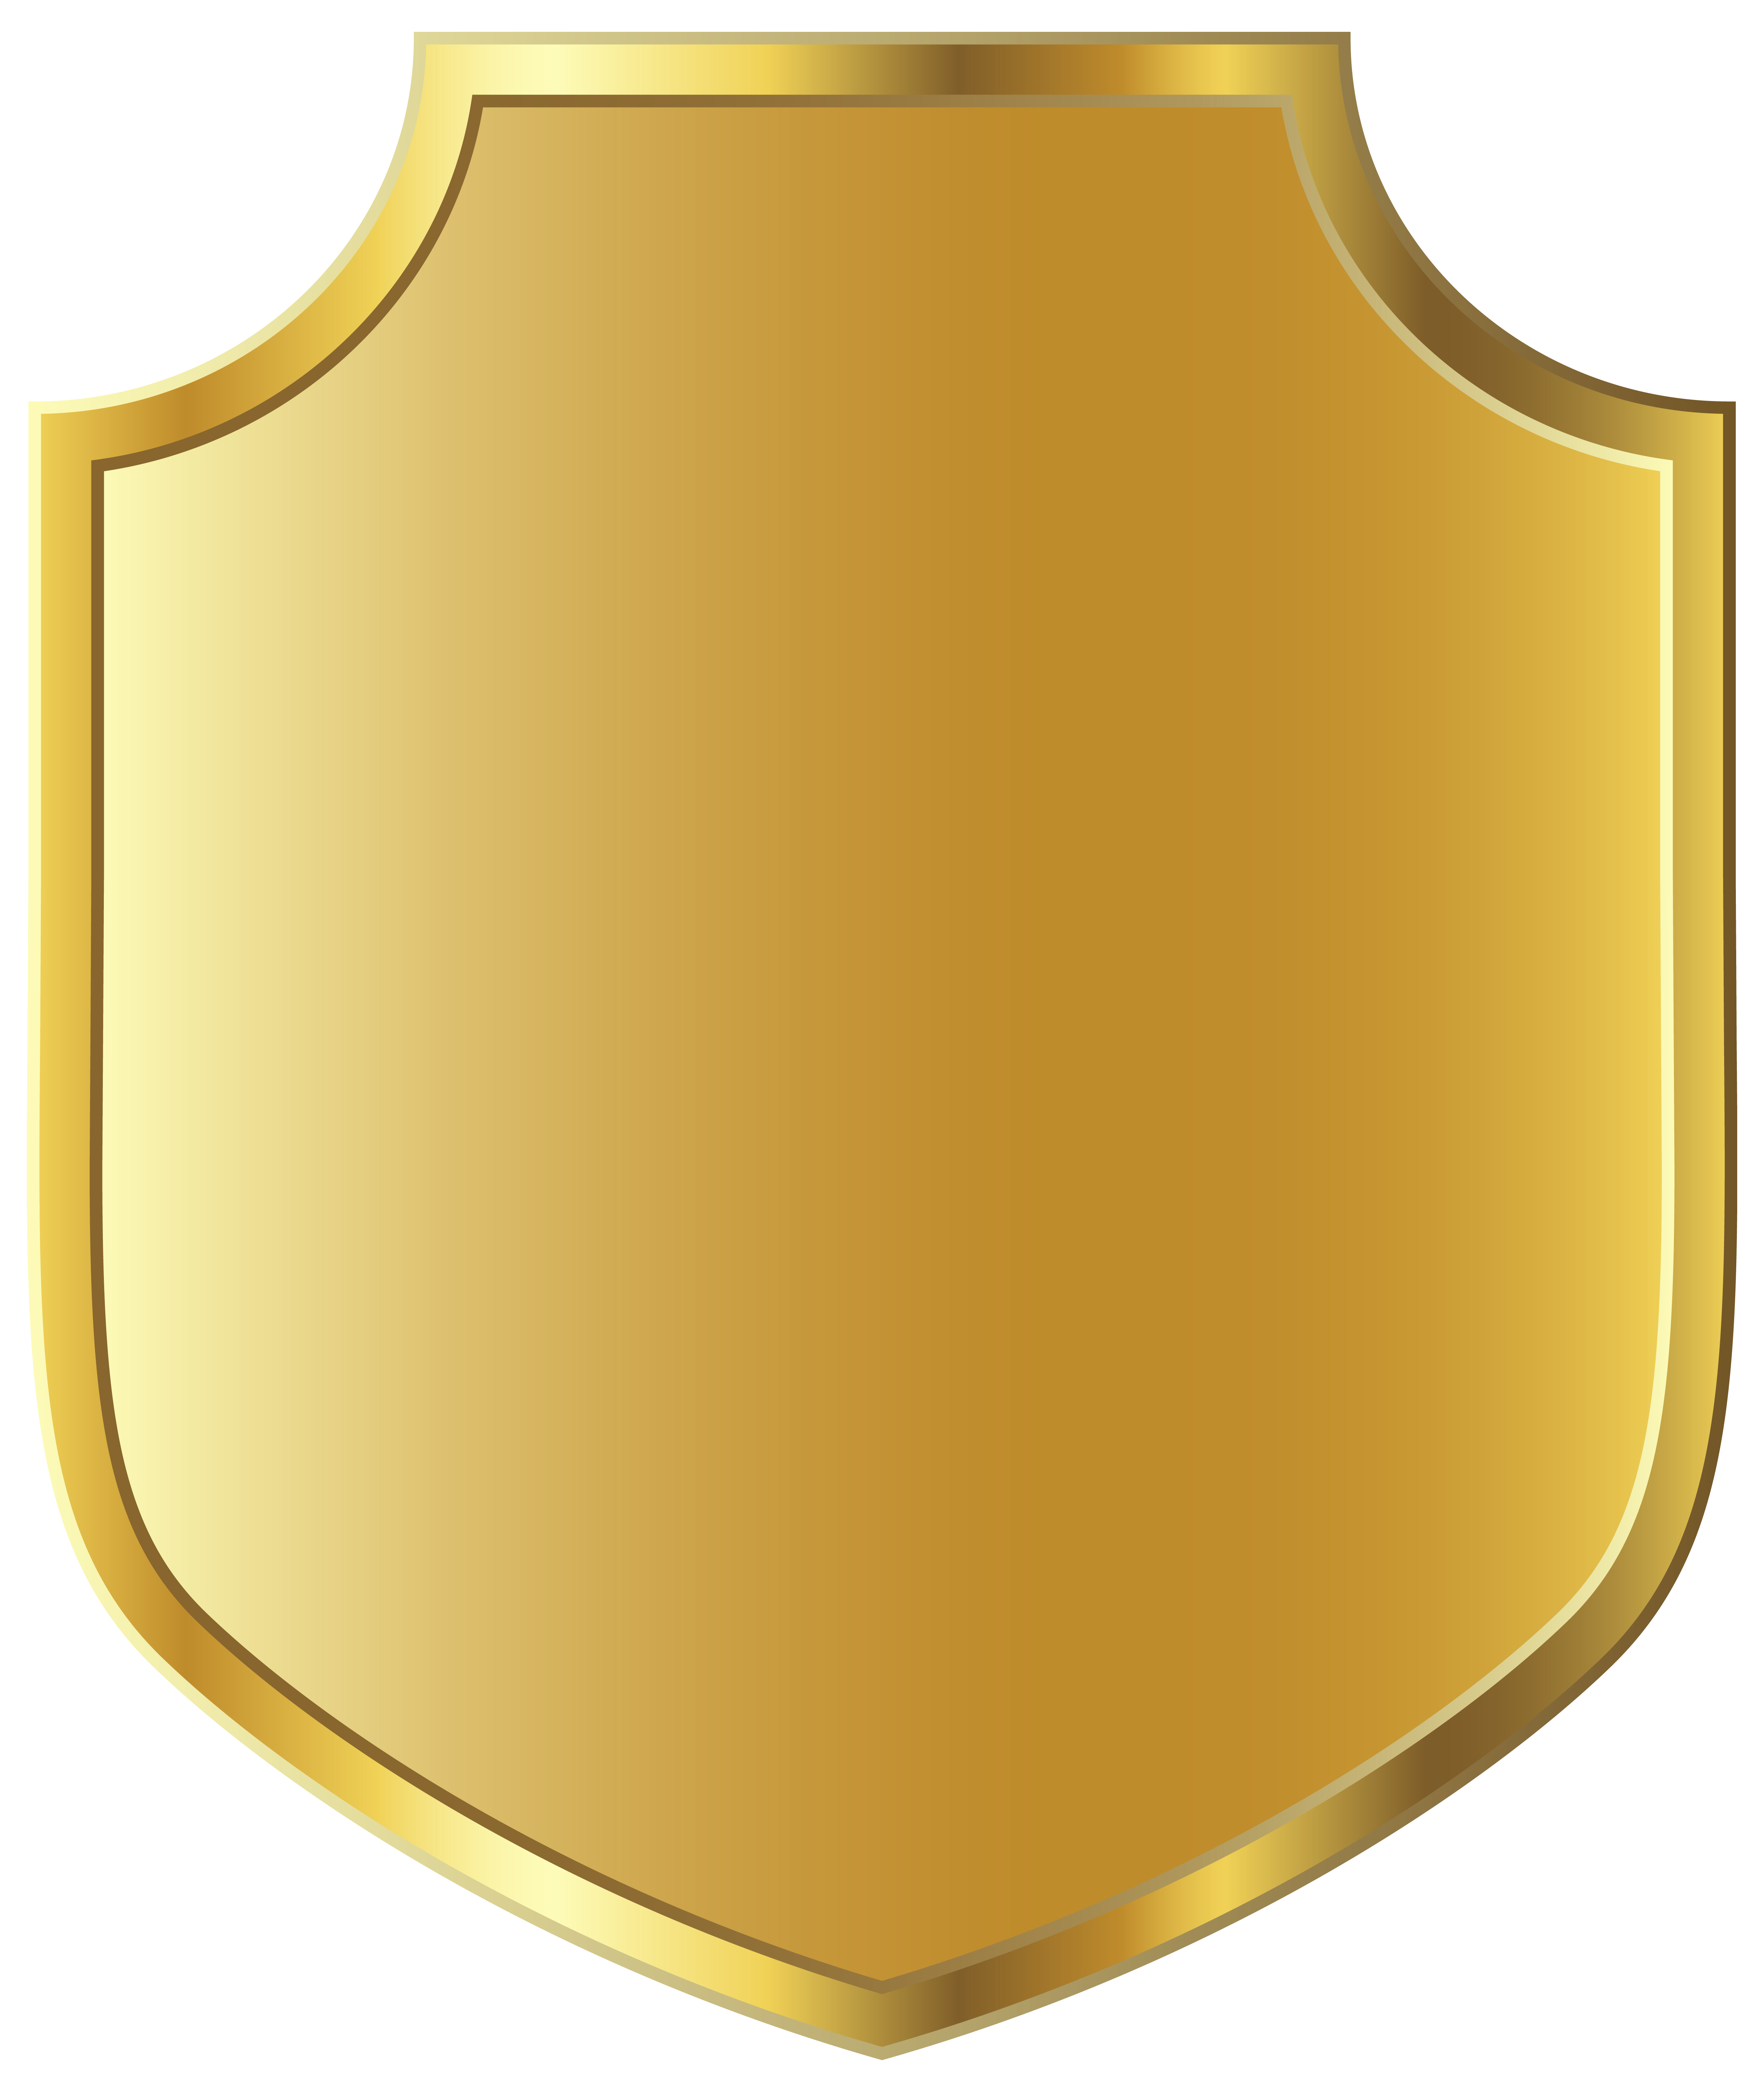 Shield Badge PNG Image Background PNG Arts 5266x6245